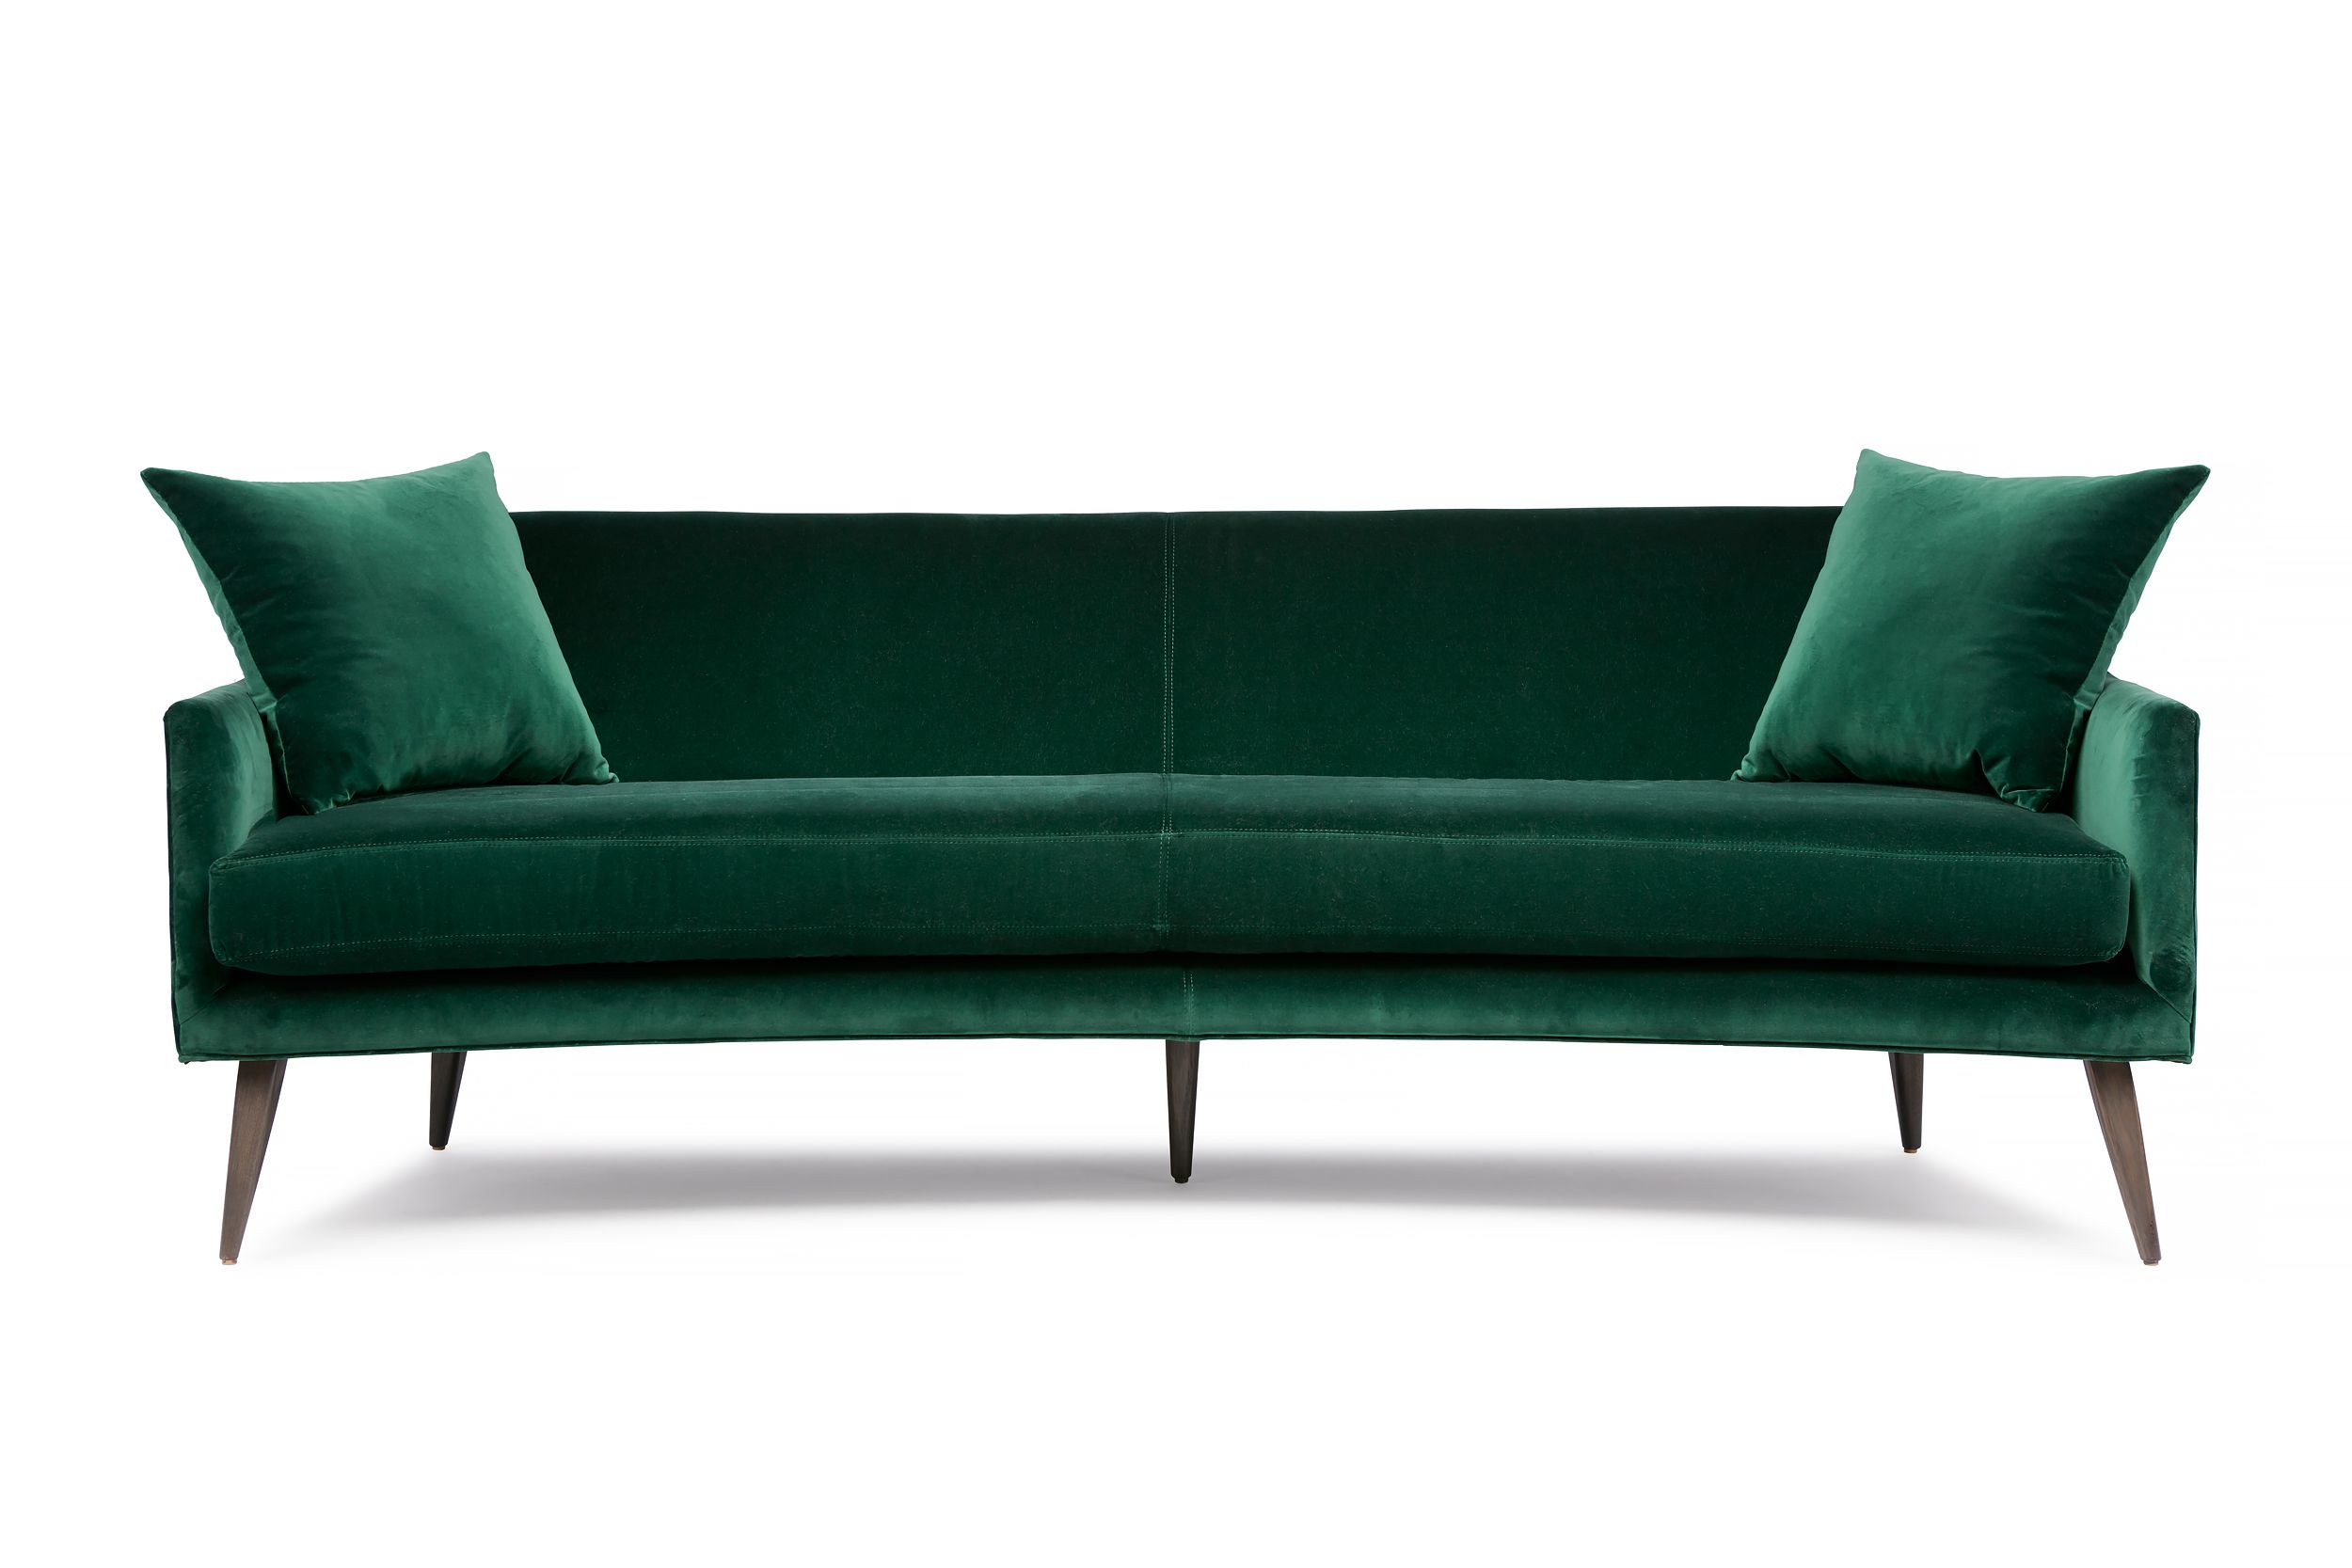 Sofa Sleeper Stanley Sofa by Arthur G Bottle Green Velvet http